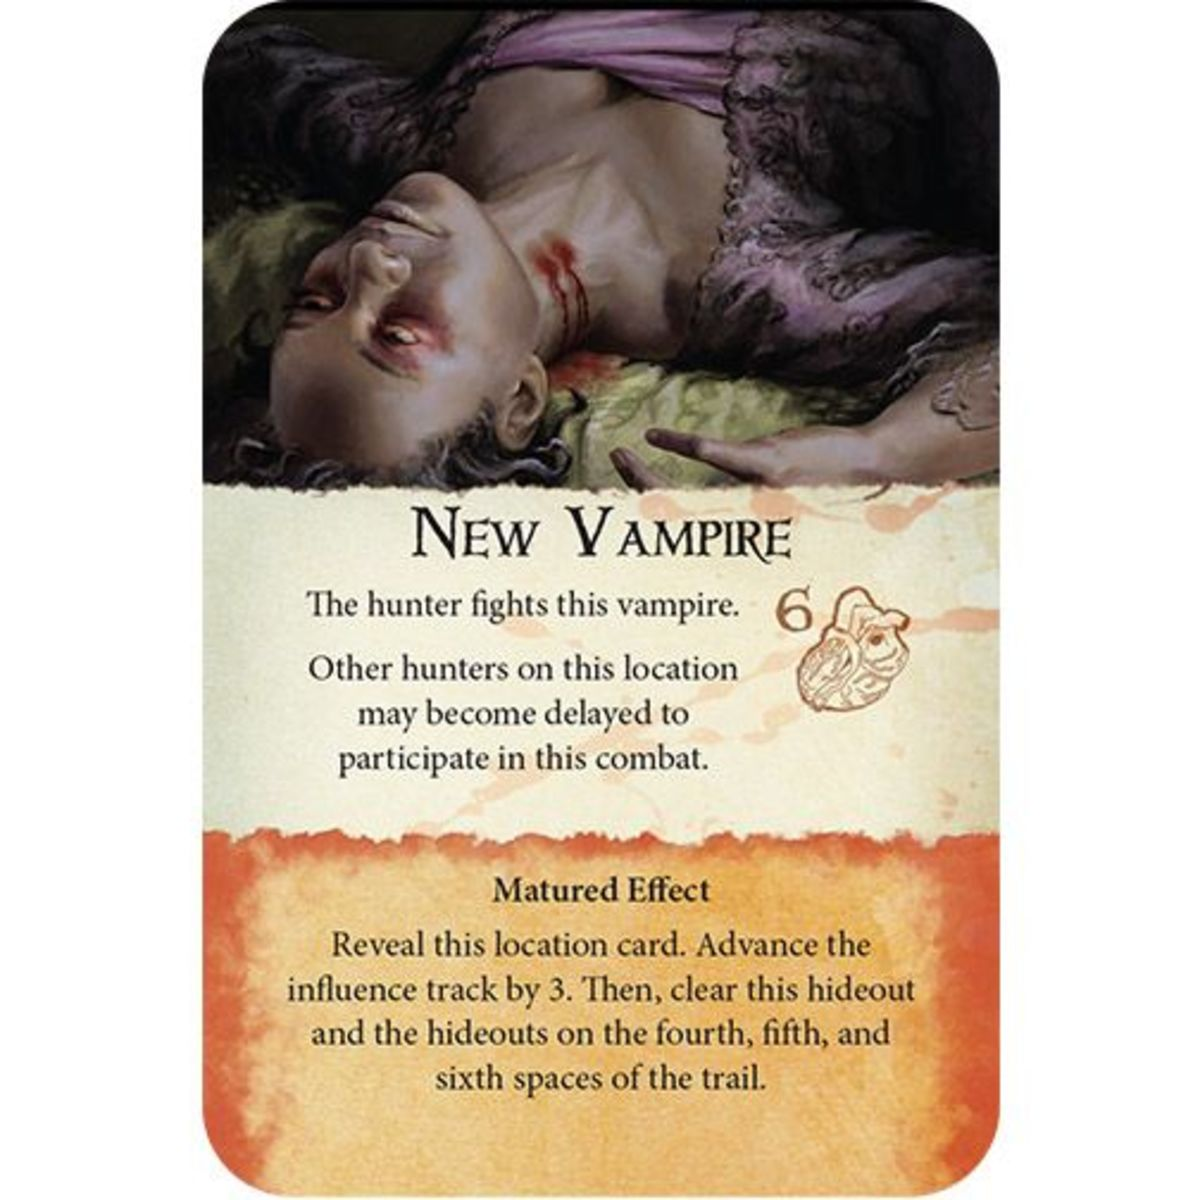 One of Dracula's event cards